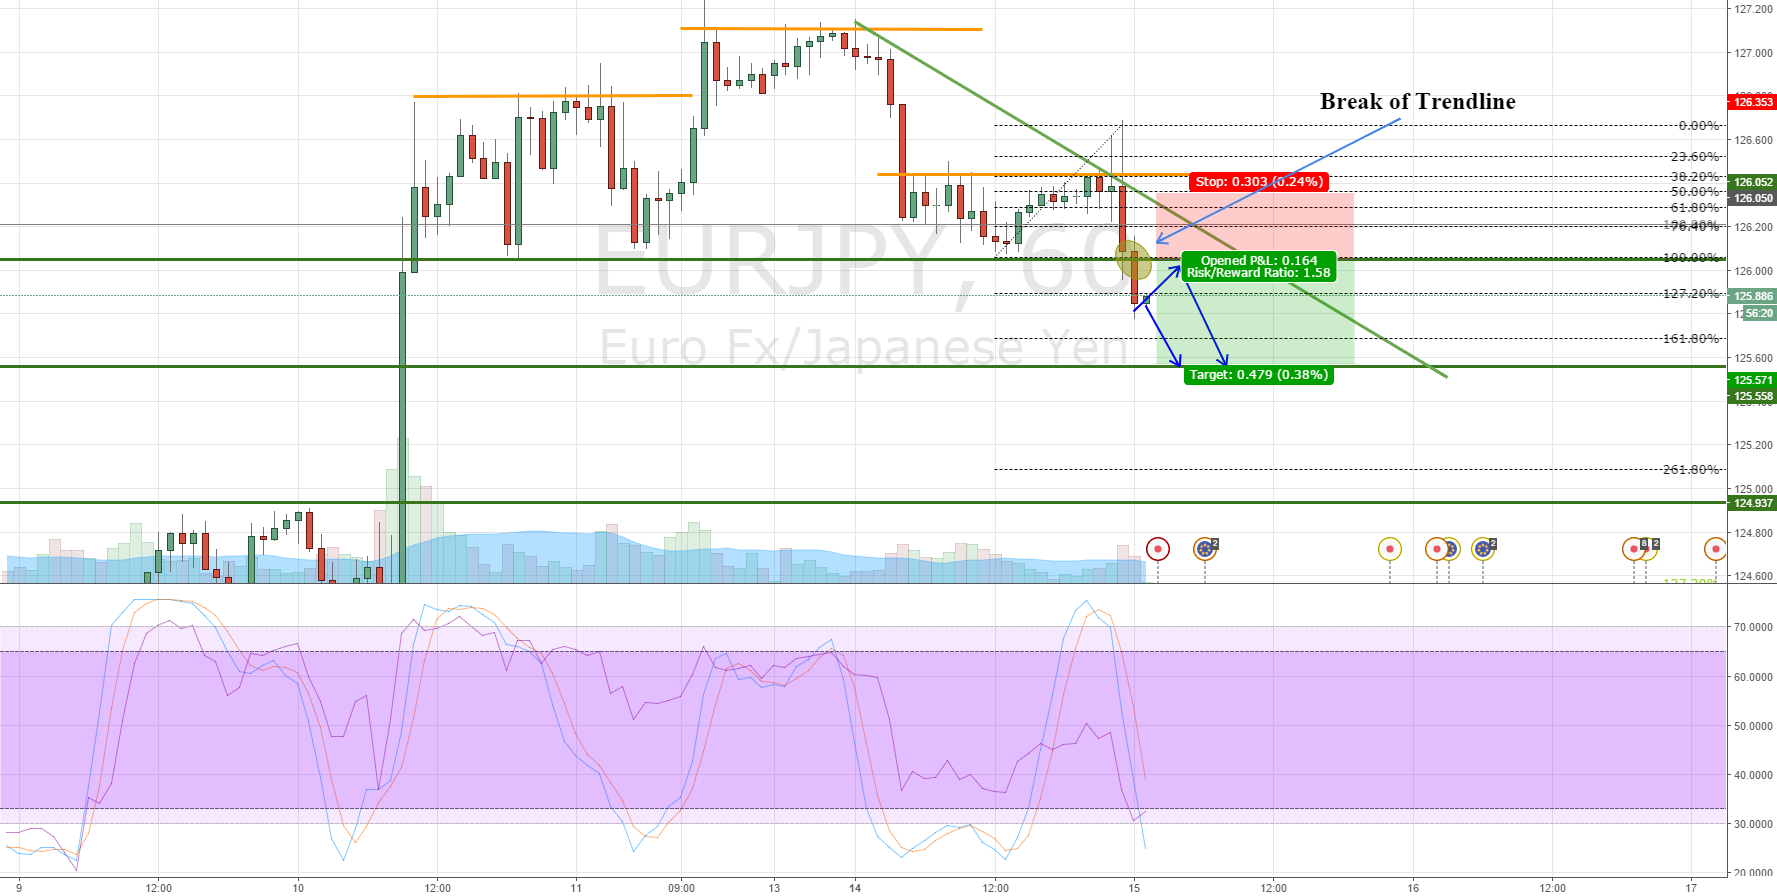 EURJPY breakout to the downisde